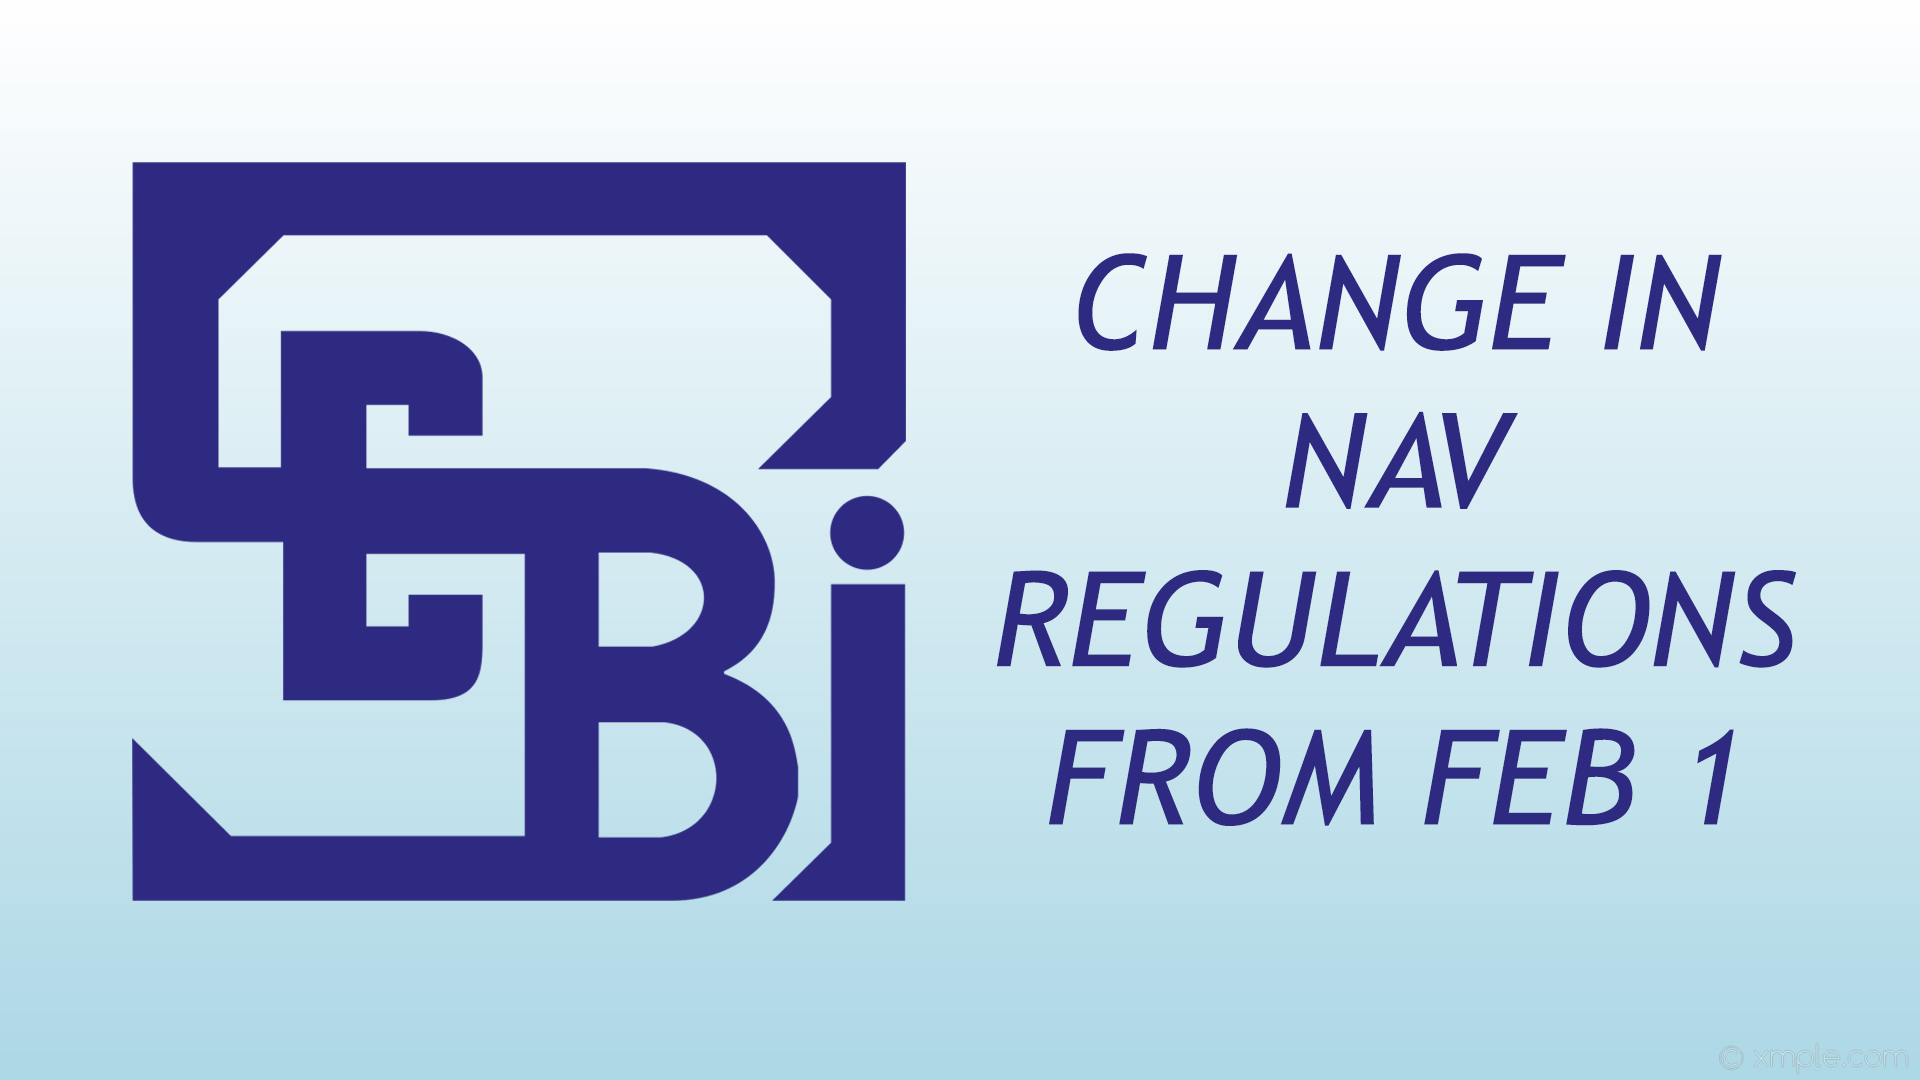 SEBI's new NAV Rules to be applicable from February 1 - Wealth Baba - Financial Planner & Investment Advisor in India